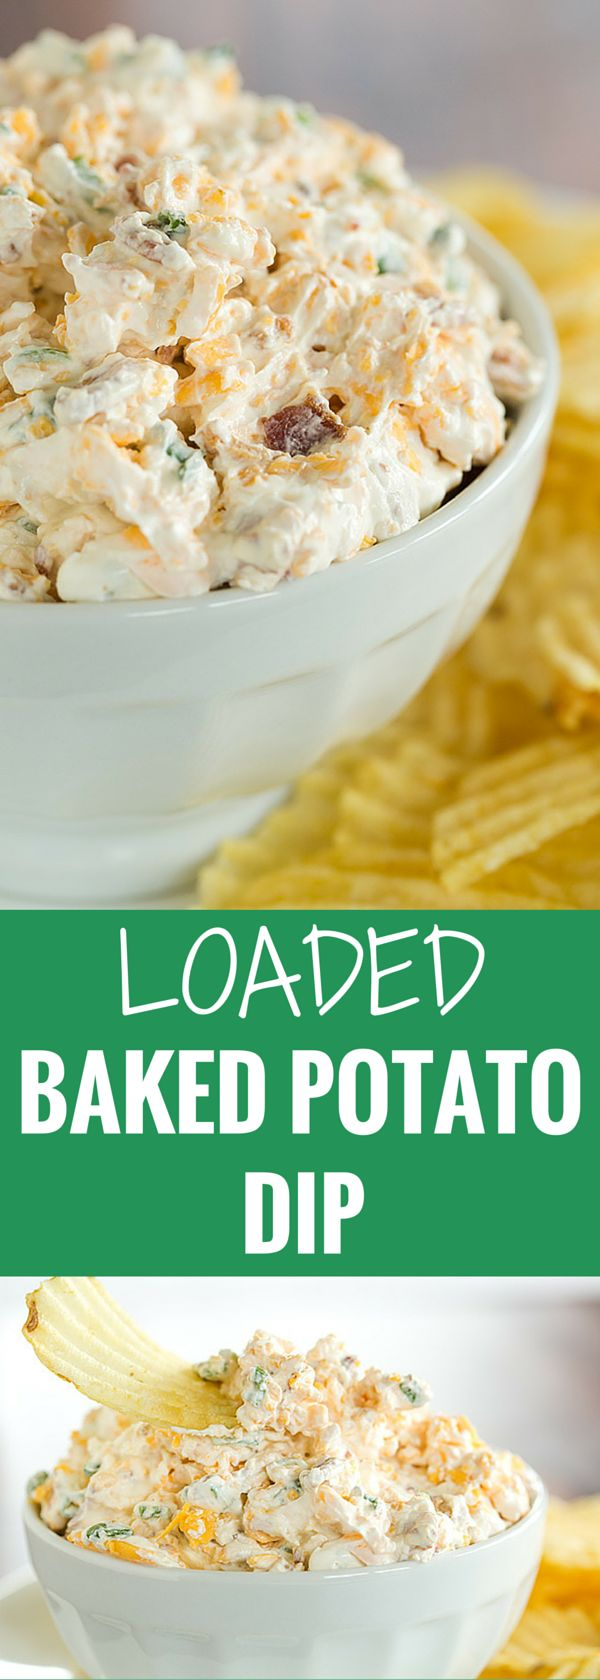 ... loaded baked potatoes loaded baked potato dip recipe potato chip dip